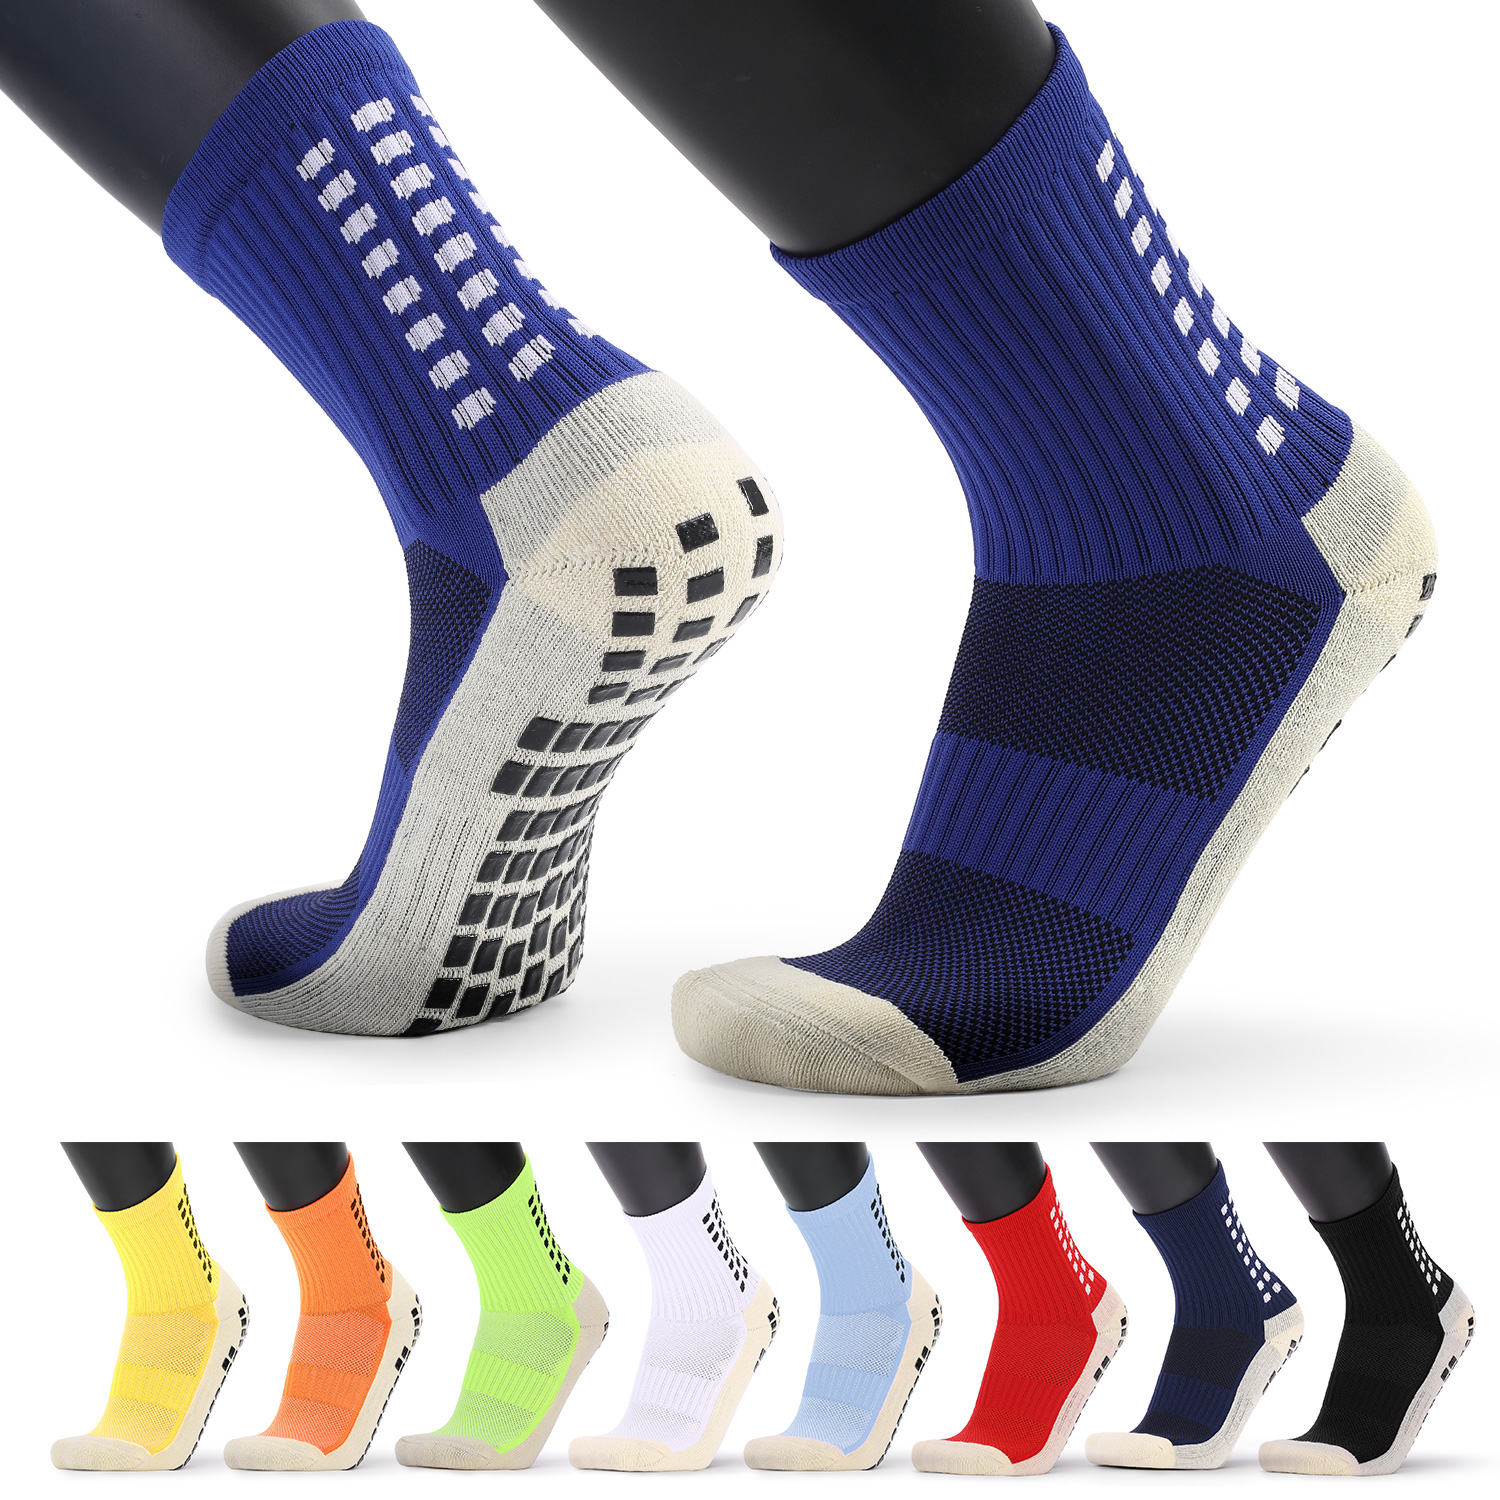 Men's Anti Slip Football Socks Athletic Long Socks Absorbent Sports Grip Socks For Basketball Soccer Volleyball Running